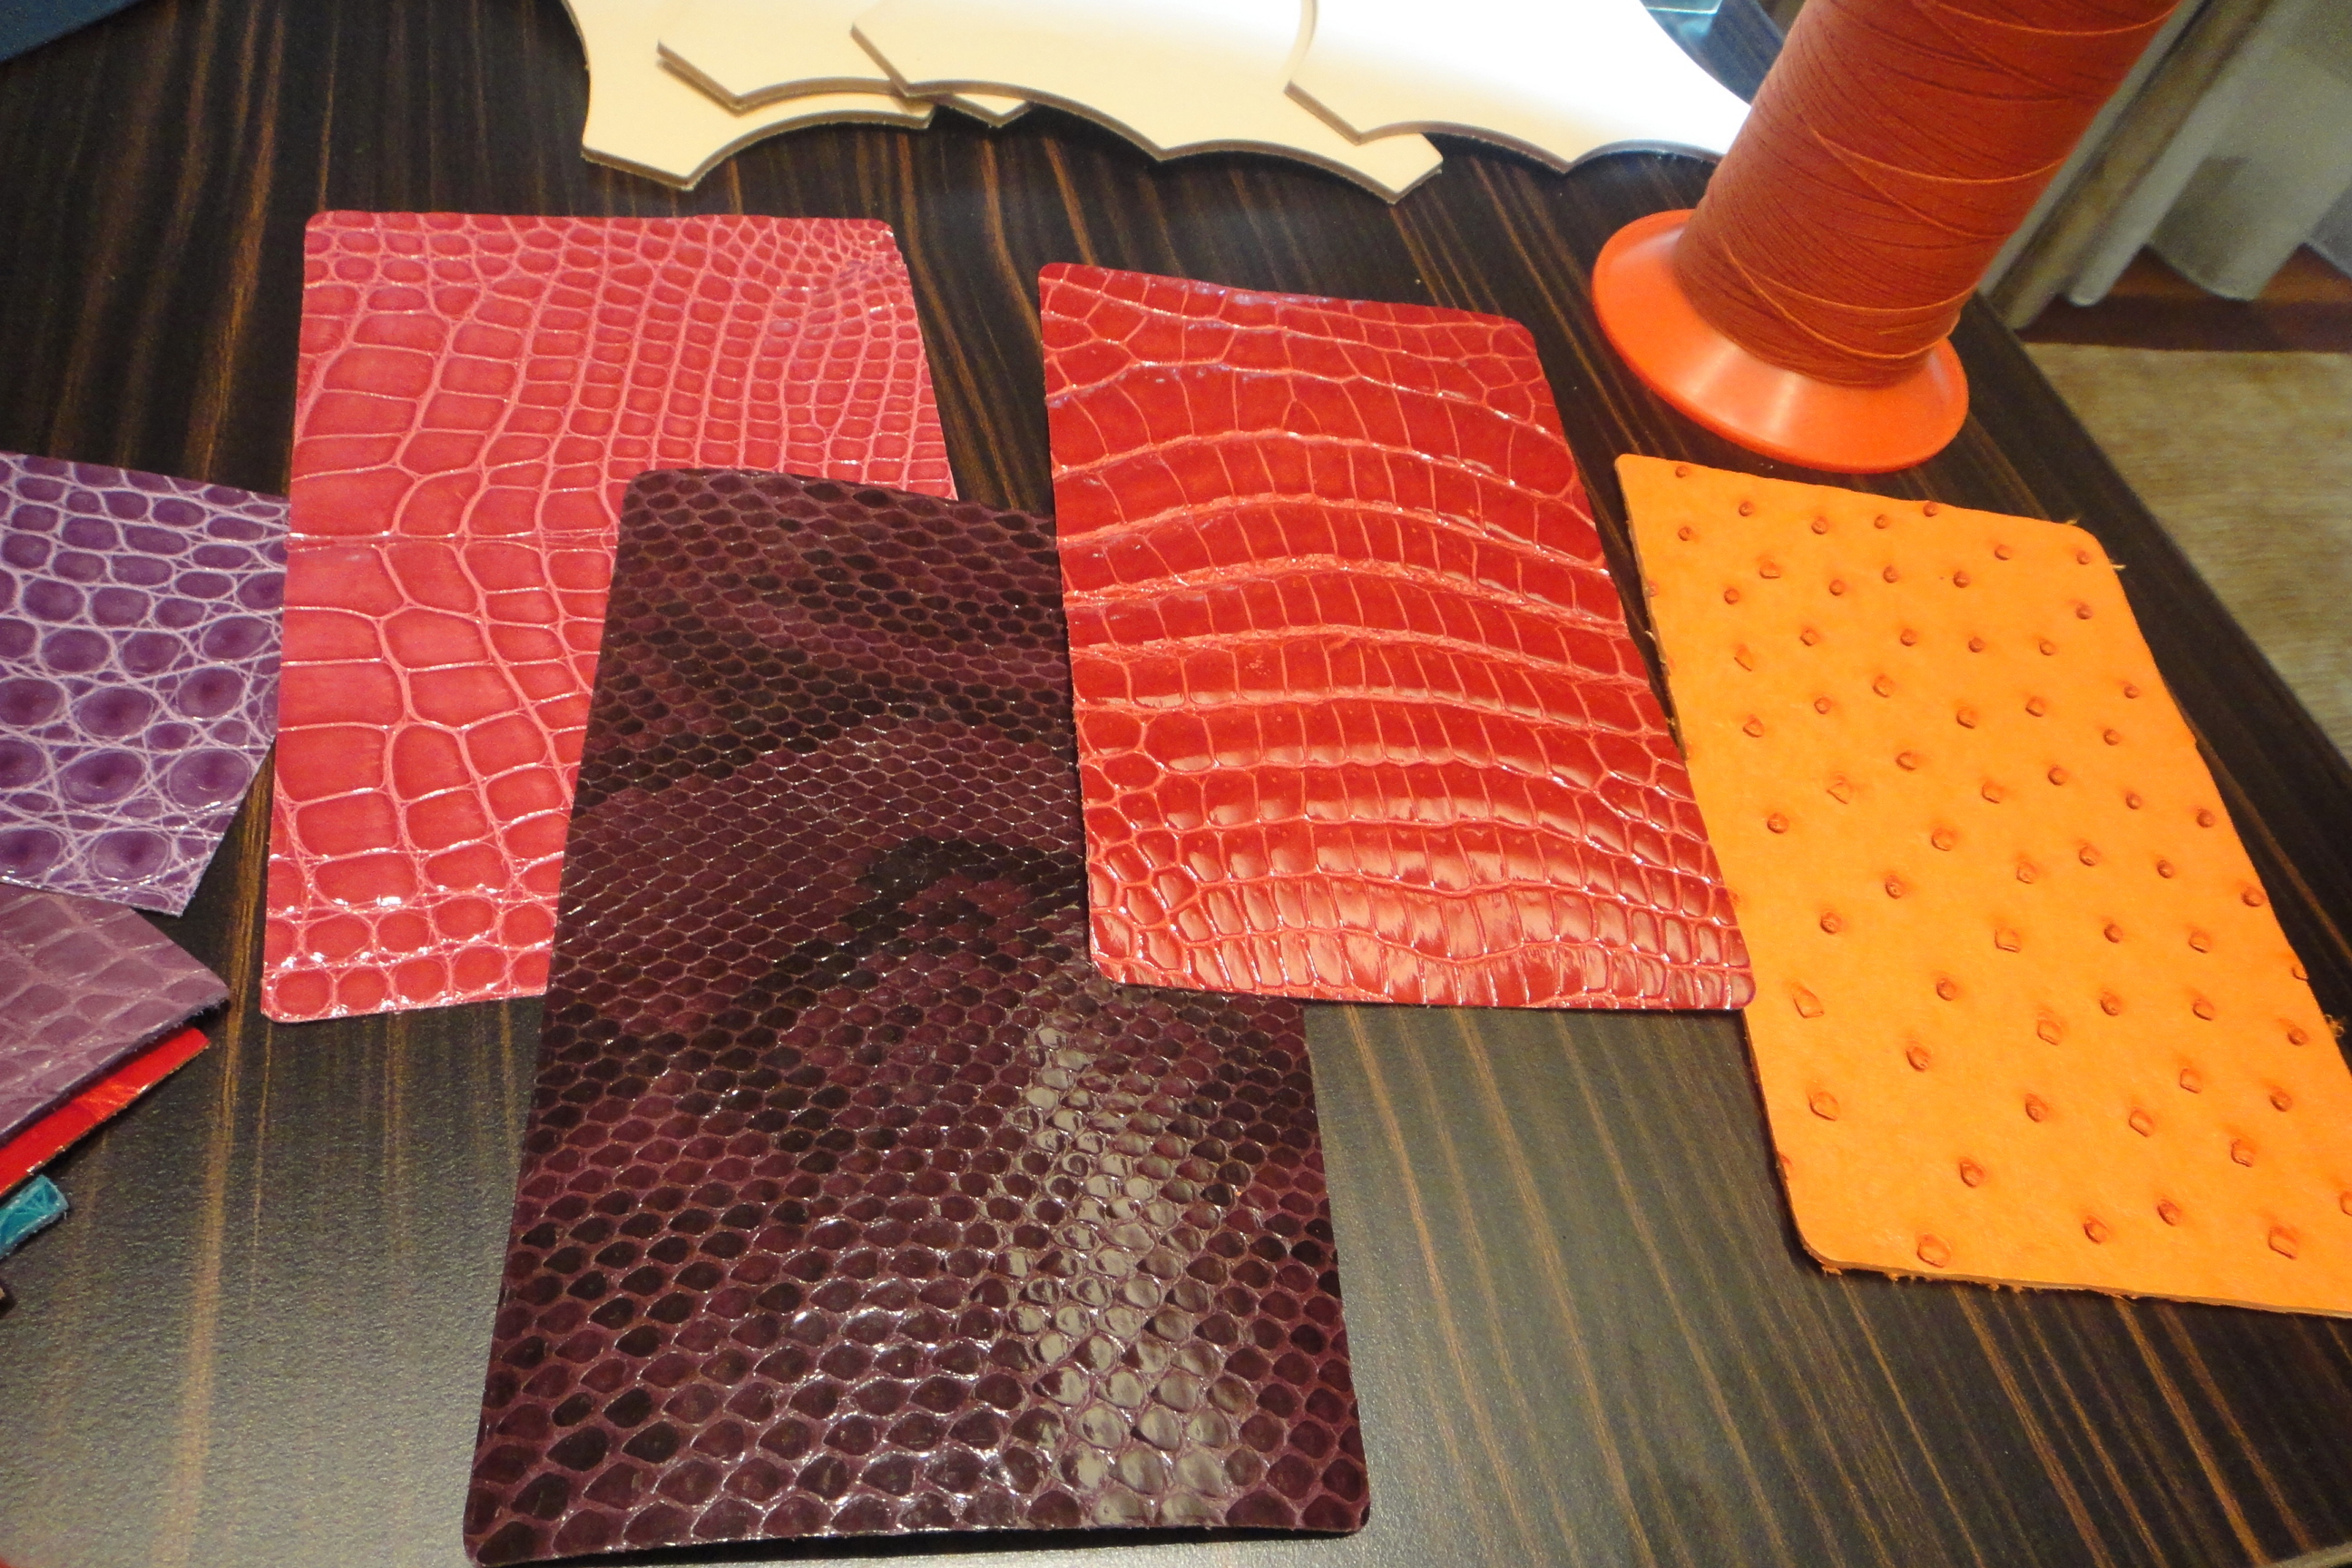 exotic leathers: alligator, python, crocodile, ostrich